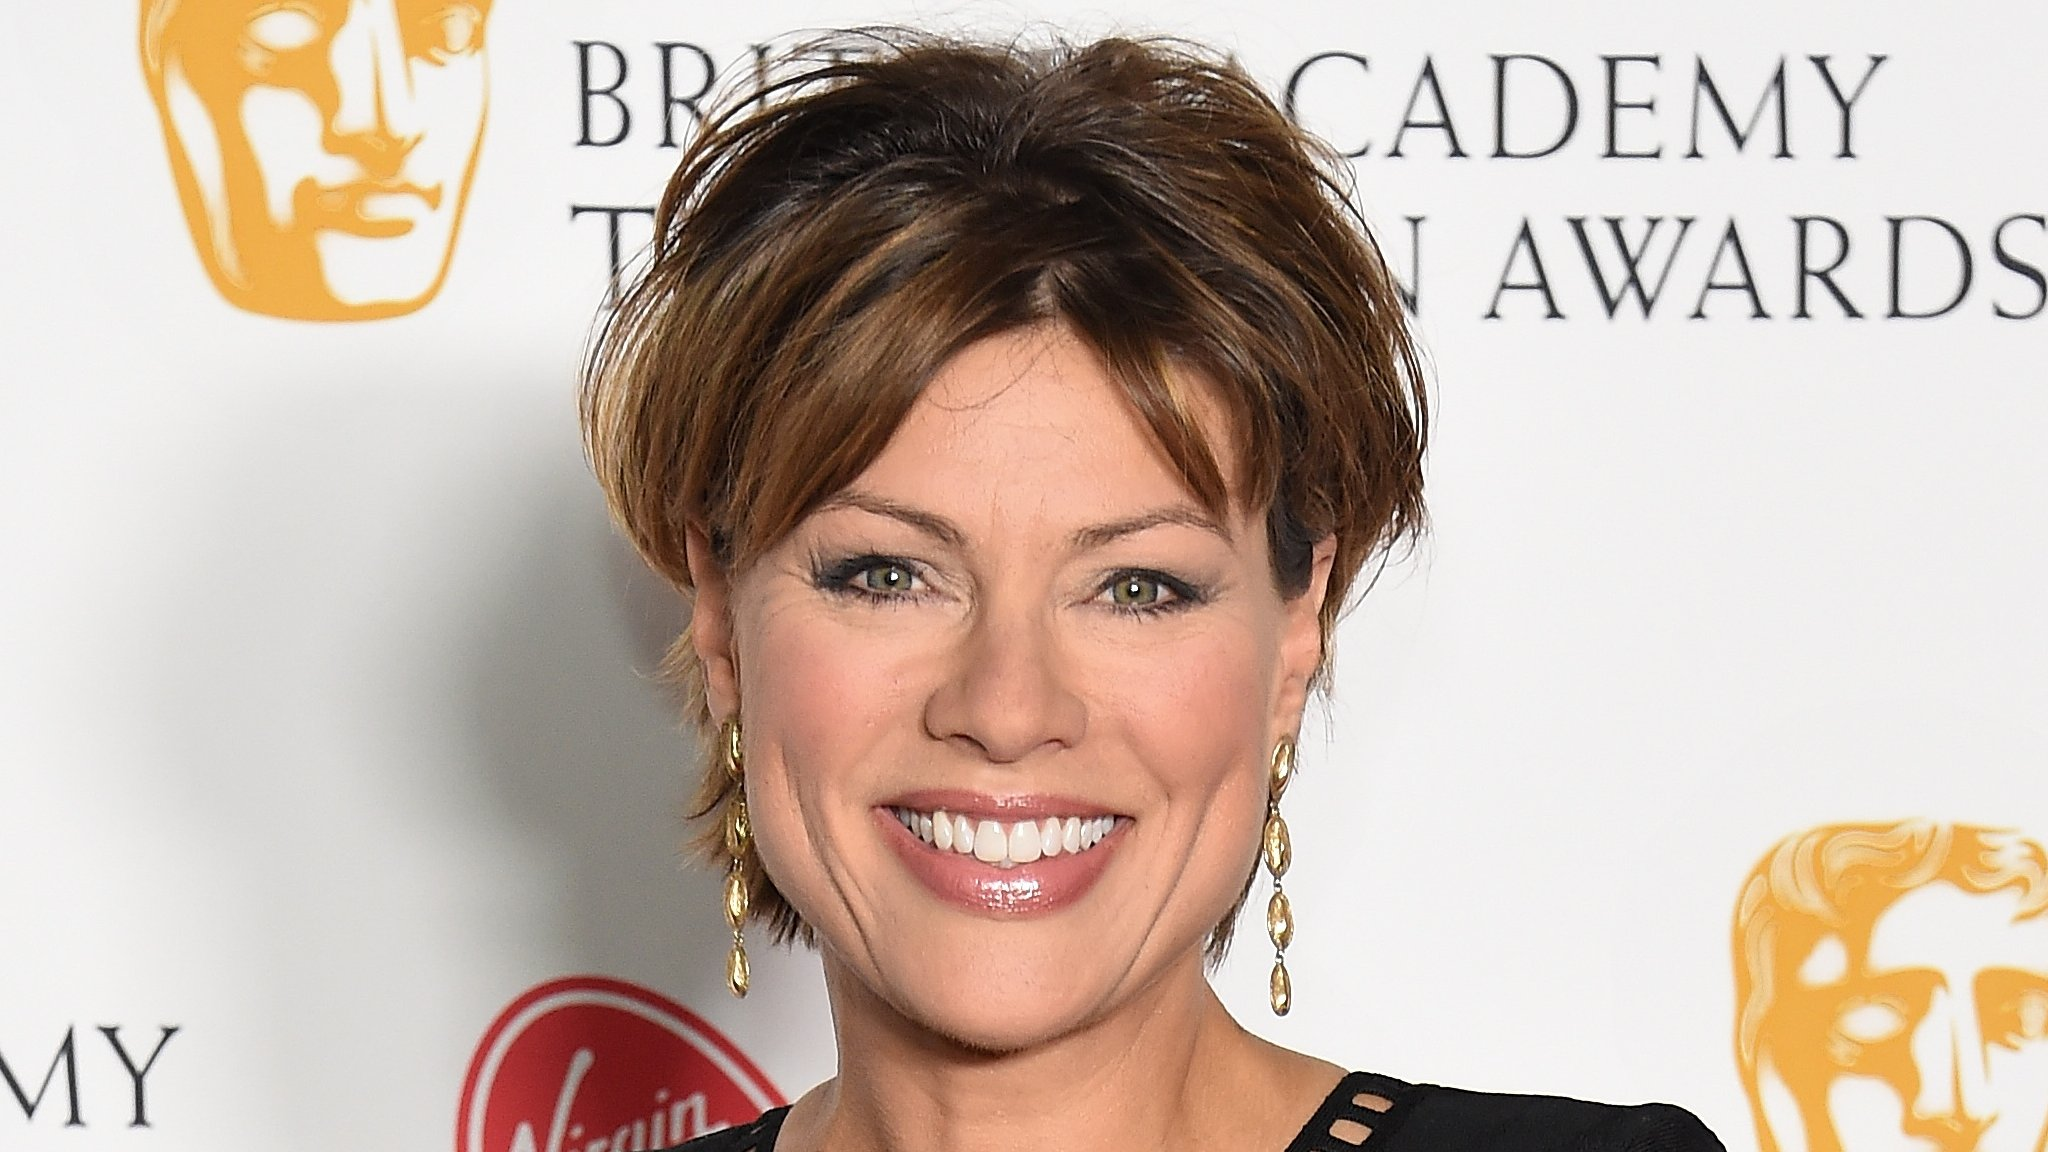 Strictly Come Dancing: Kate Silverton and Seann Walsh join line-up